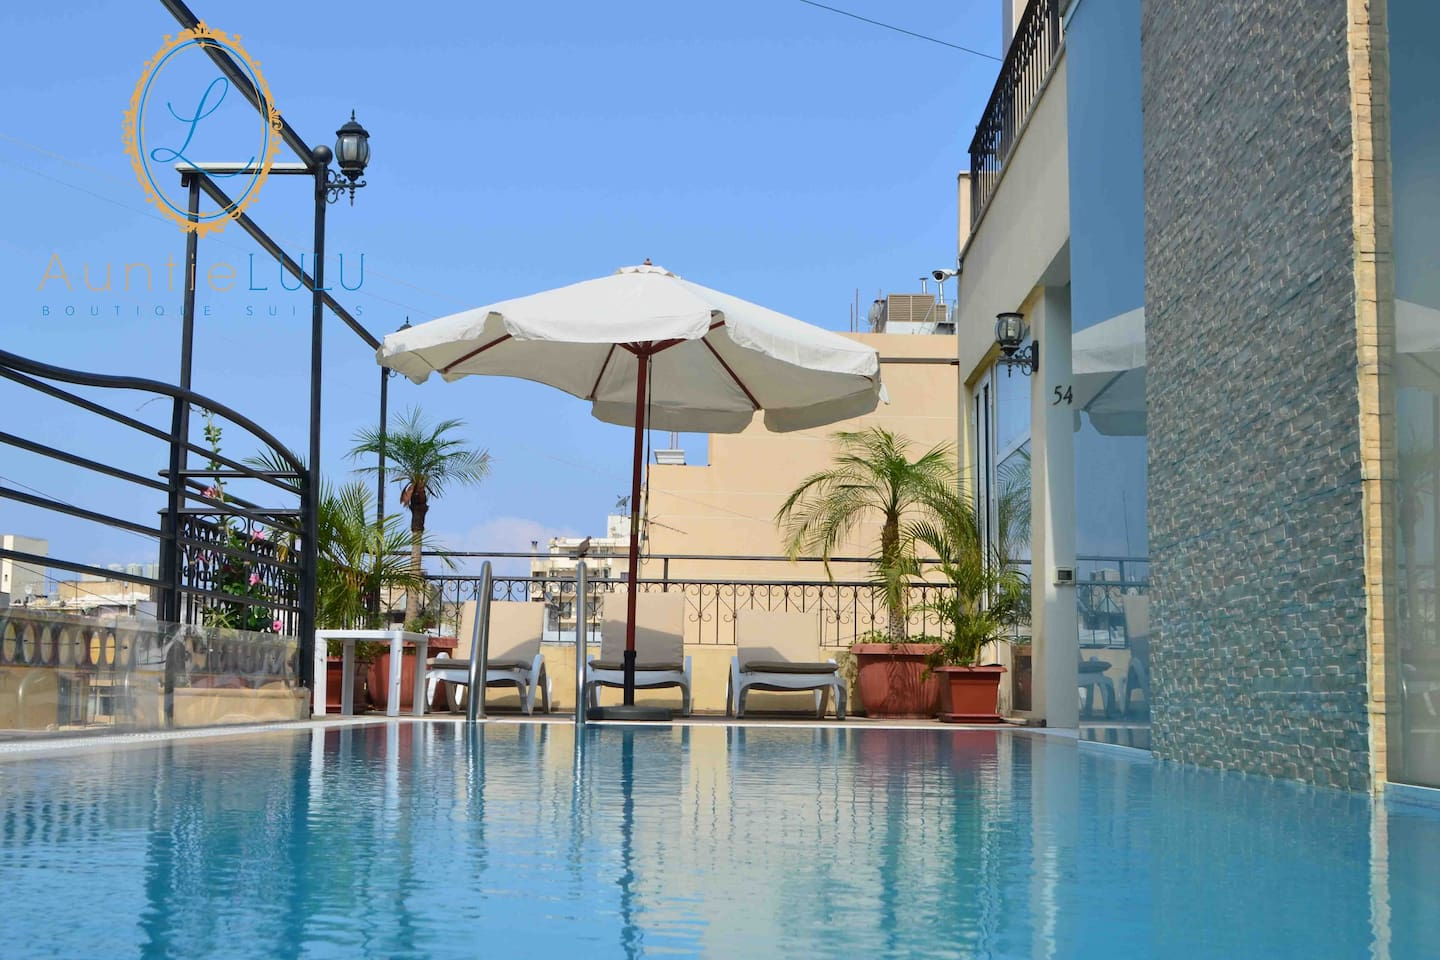 Enjoy a swim and tan at the roof top pool and deck